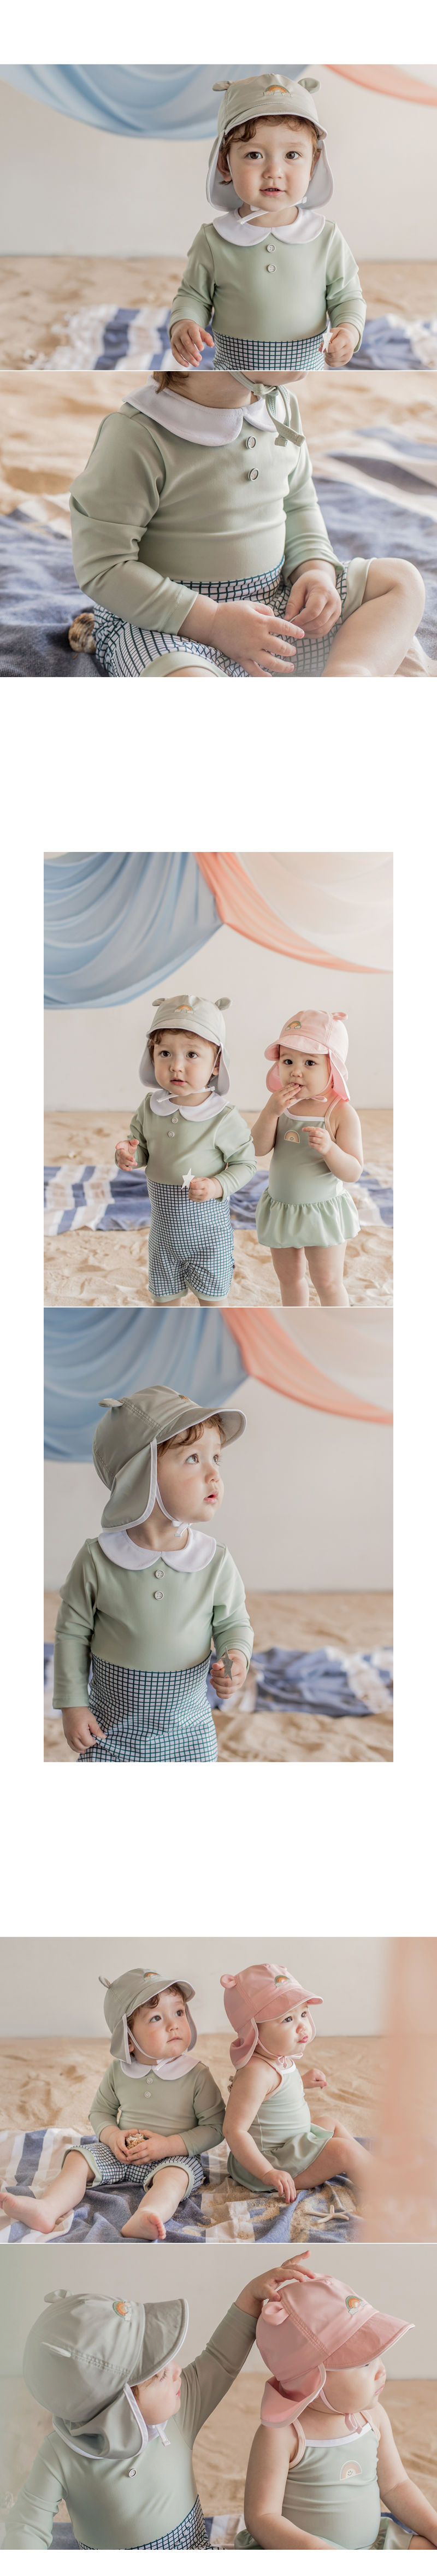 HAPPY PRINCE - Korean Children Fashion - #Kfashion4kids - Mon Chouchou Rashguard Set - 6